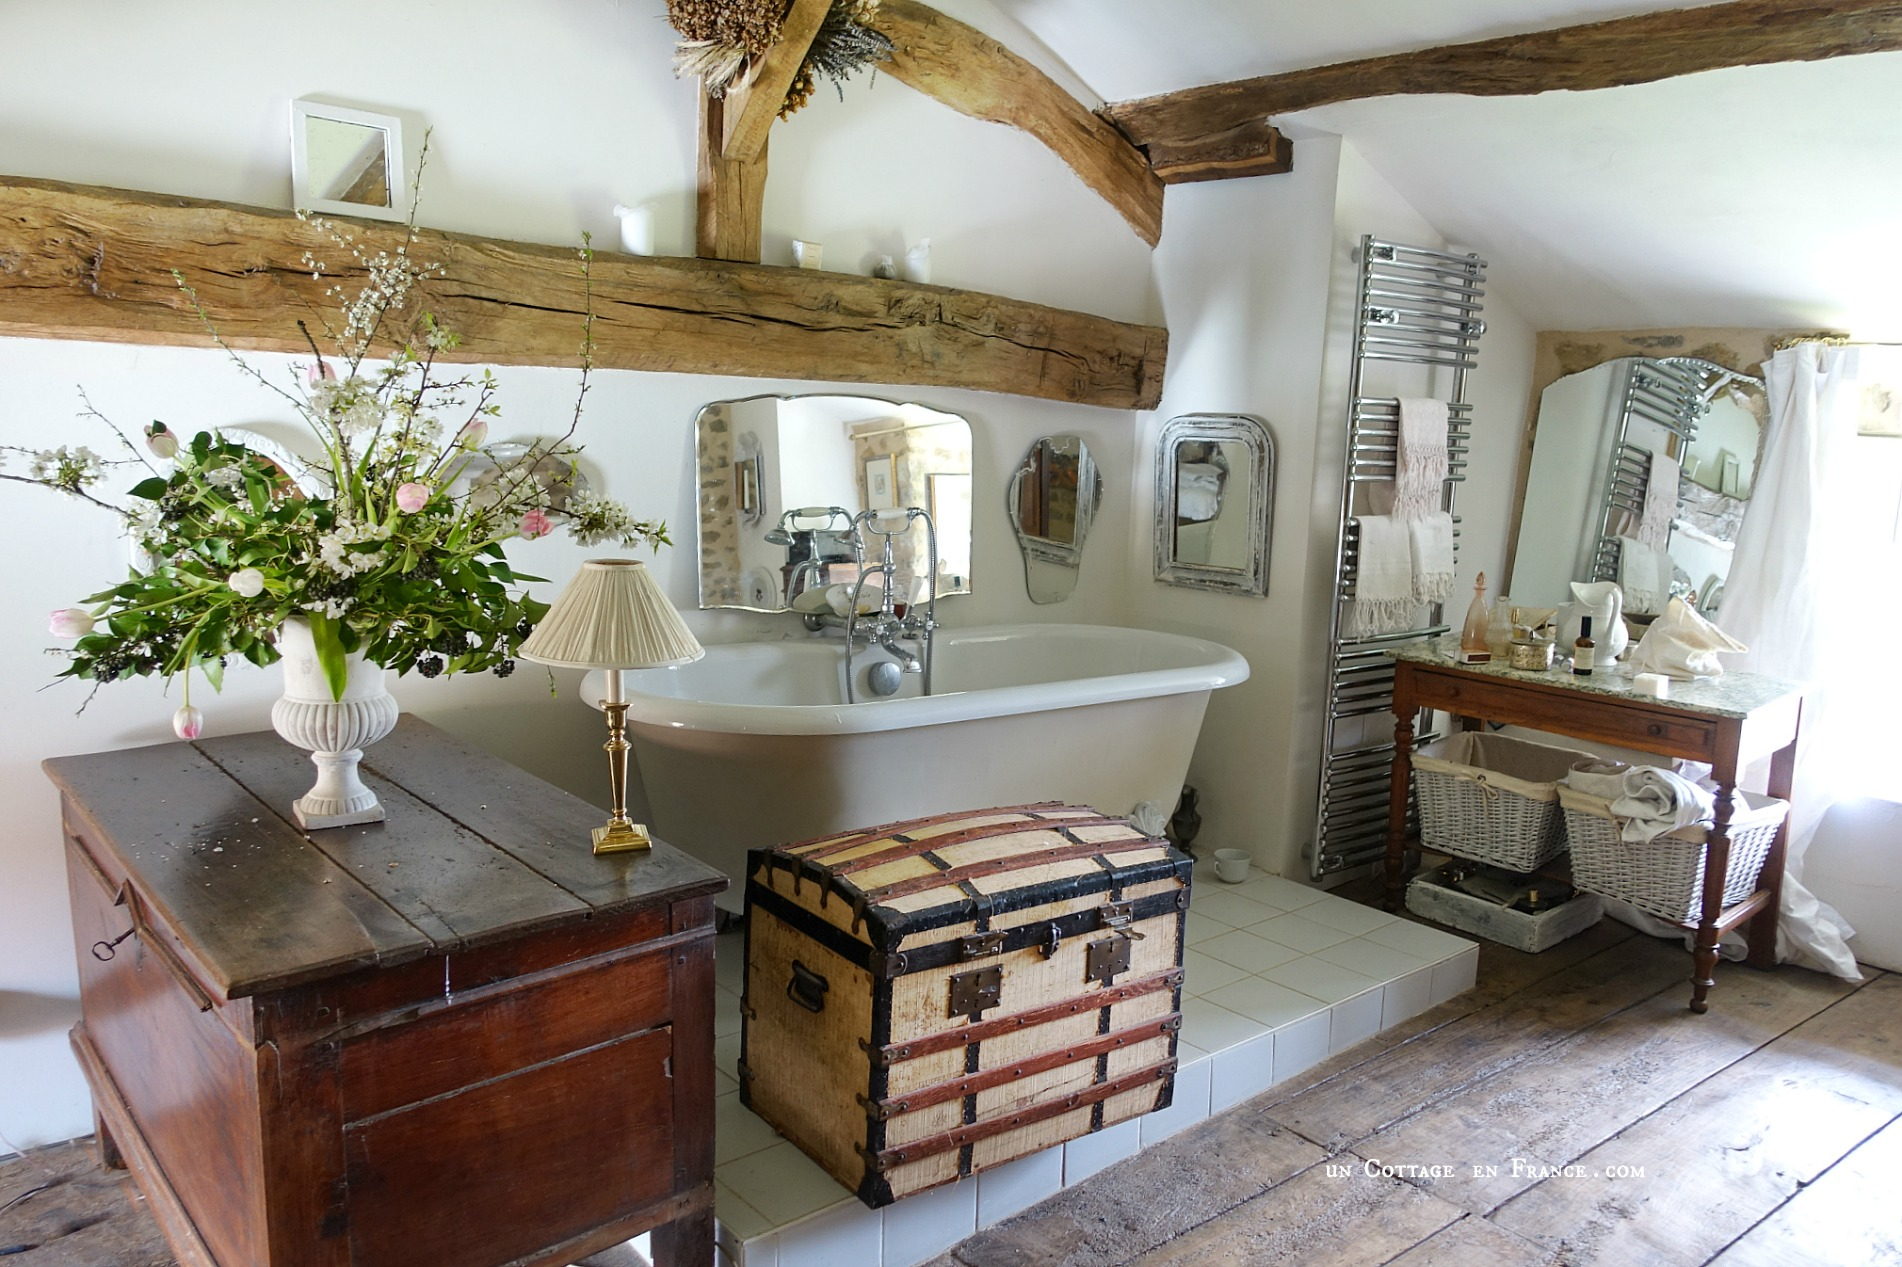 Incroyable Le Bouquet De Printemps Dans La Salle De Bain Cottage, Blog Un Cottage En  France 0